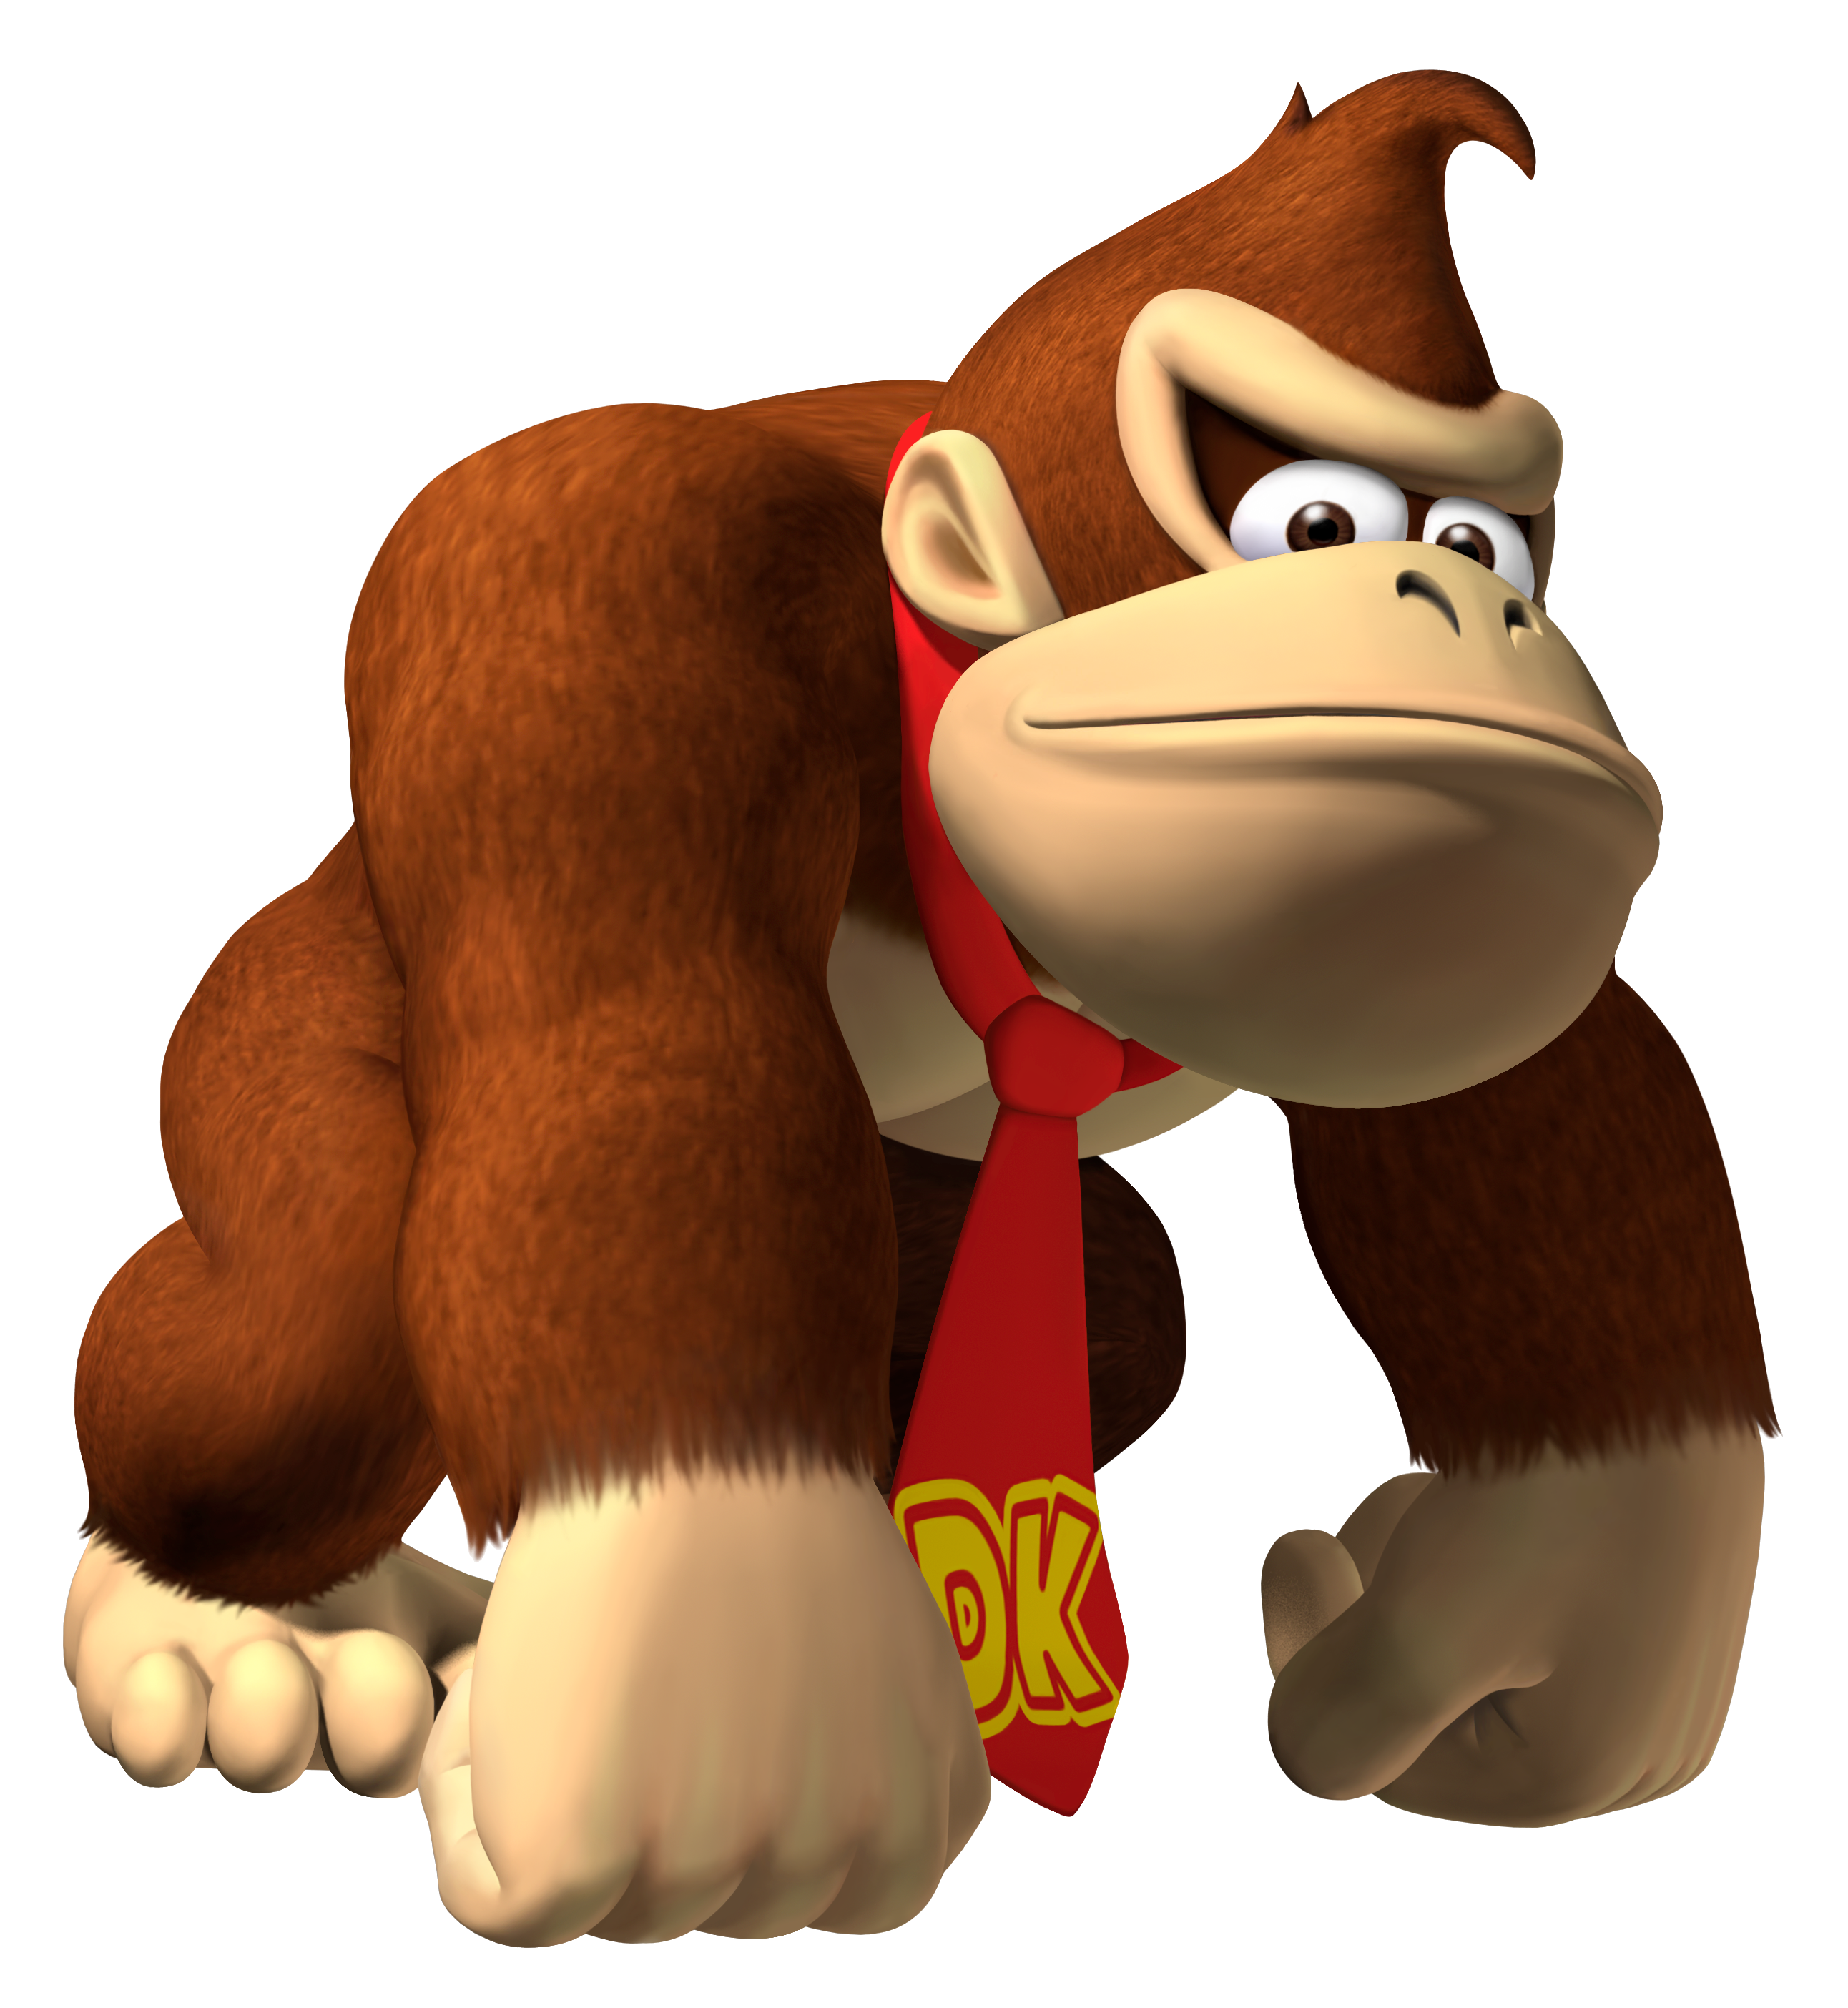 Donkey kong bongos png. D country pinterest space